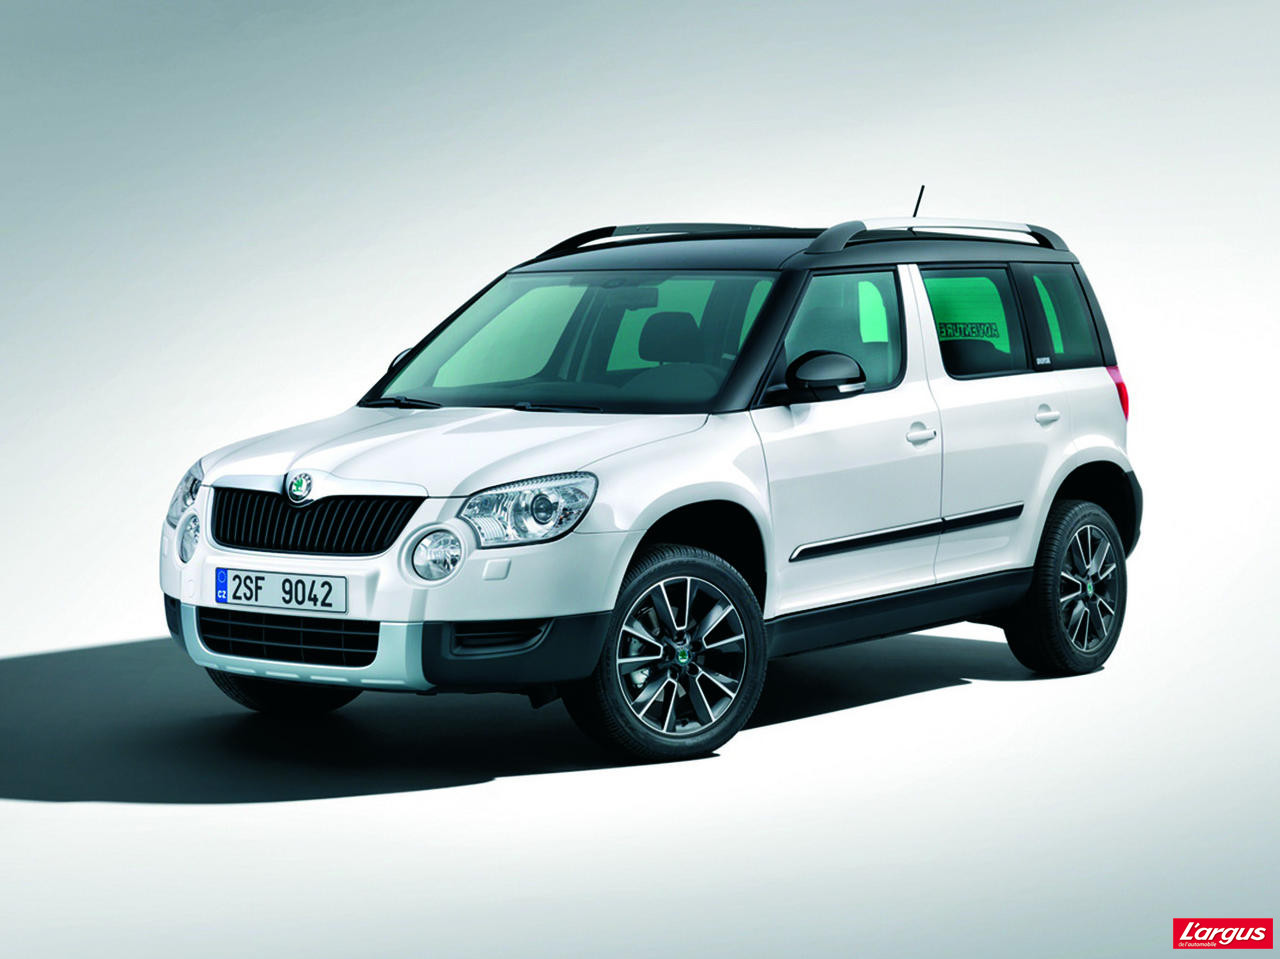 le skoda yeti part l 39 adventure l 39 argus. Black Bedroom Furniture Sets. Home Design Ideas